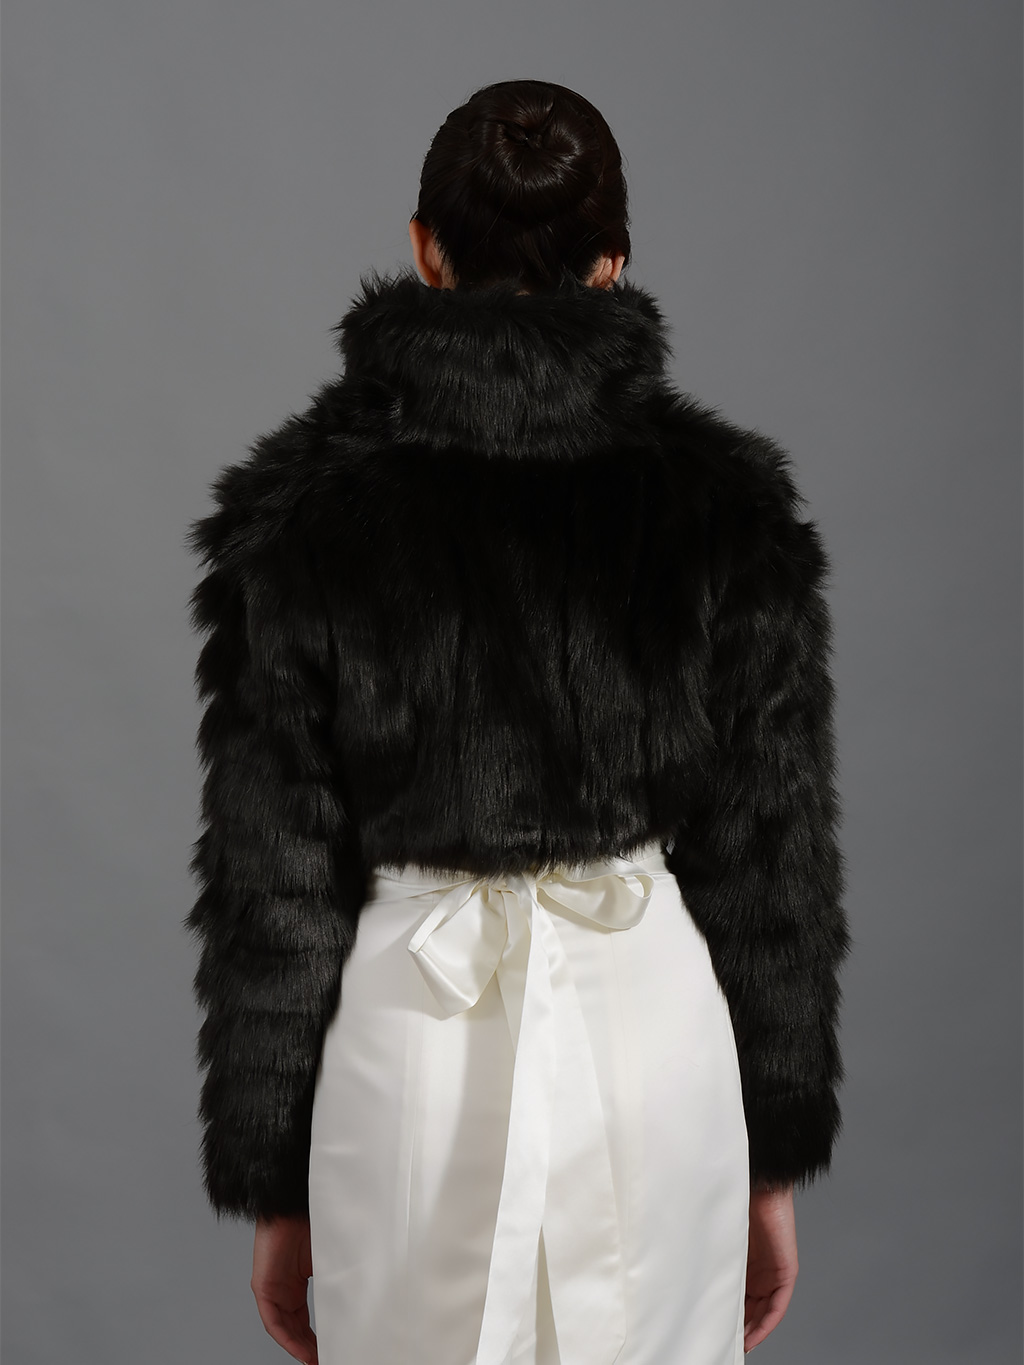 Faux fur is a good imitation of animal fur that is created with synthetics but with the same look as that of the natural fur. The faux fur wrap provides you with an elegant look that you could hardly get some years back without some animals having to be killed.